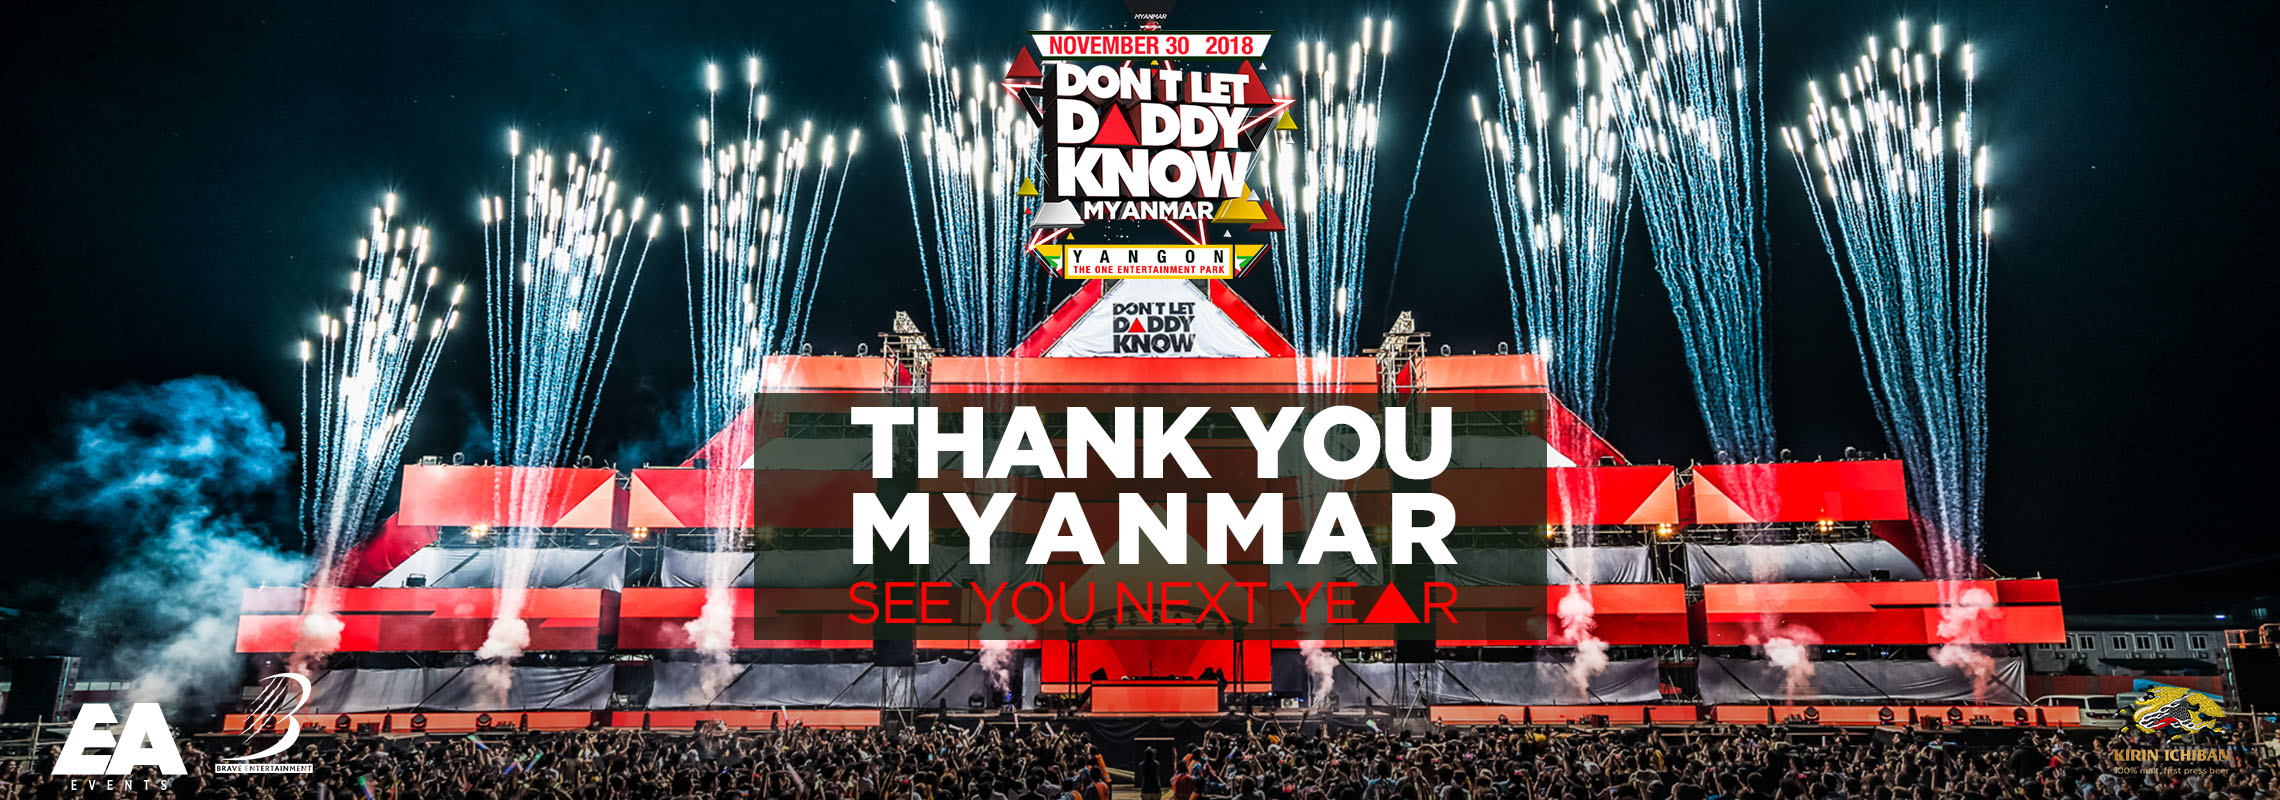 Thank U Myanmar - E&A Events